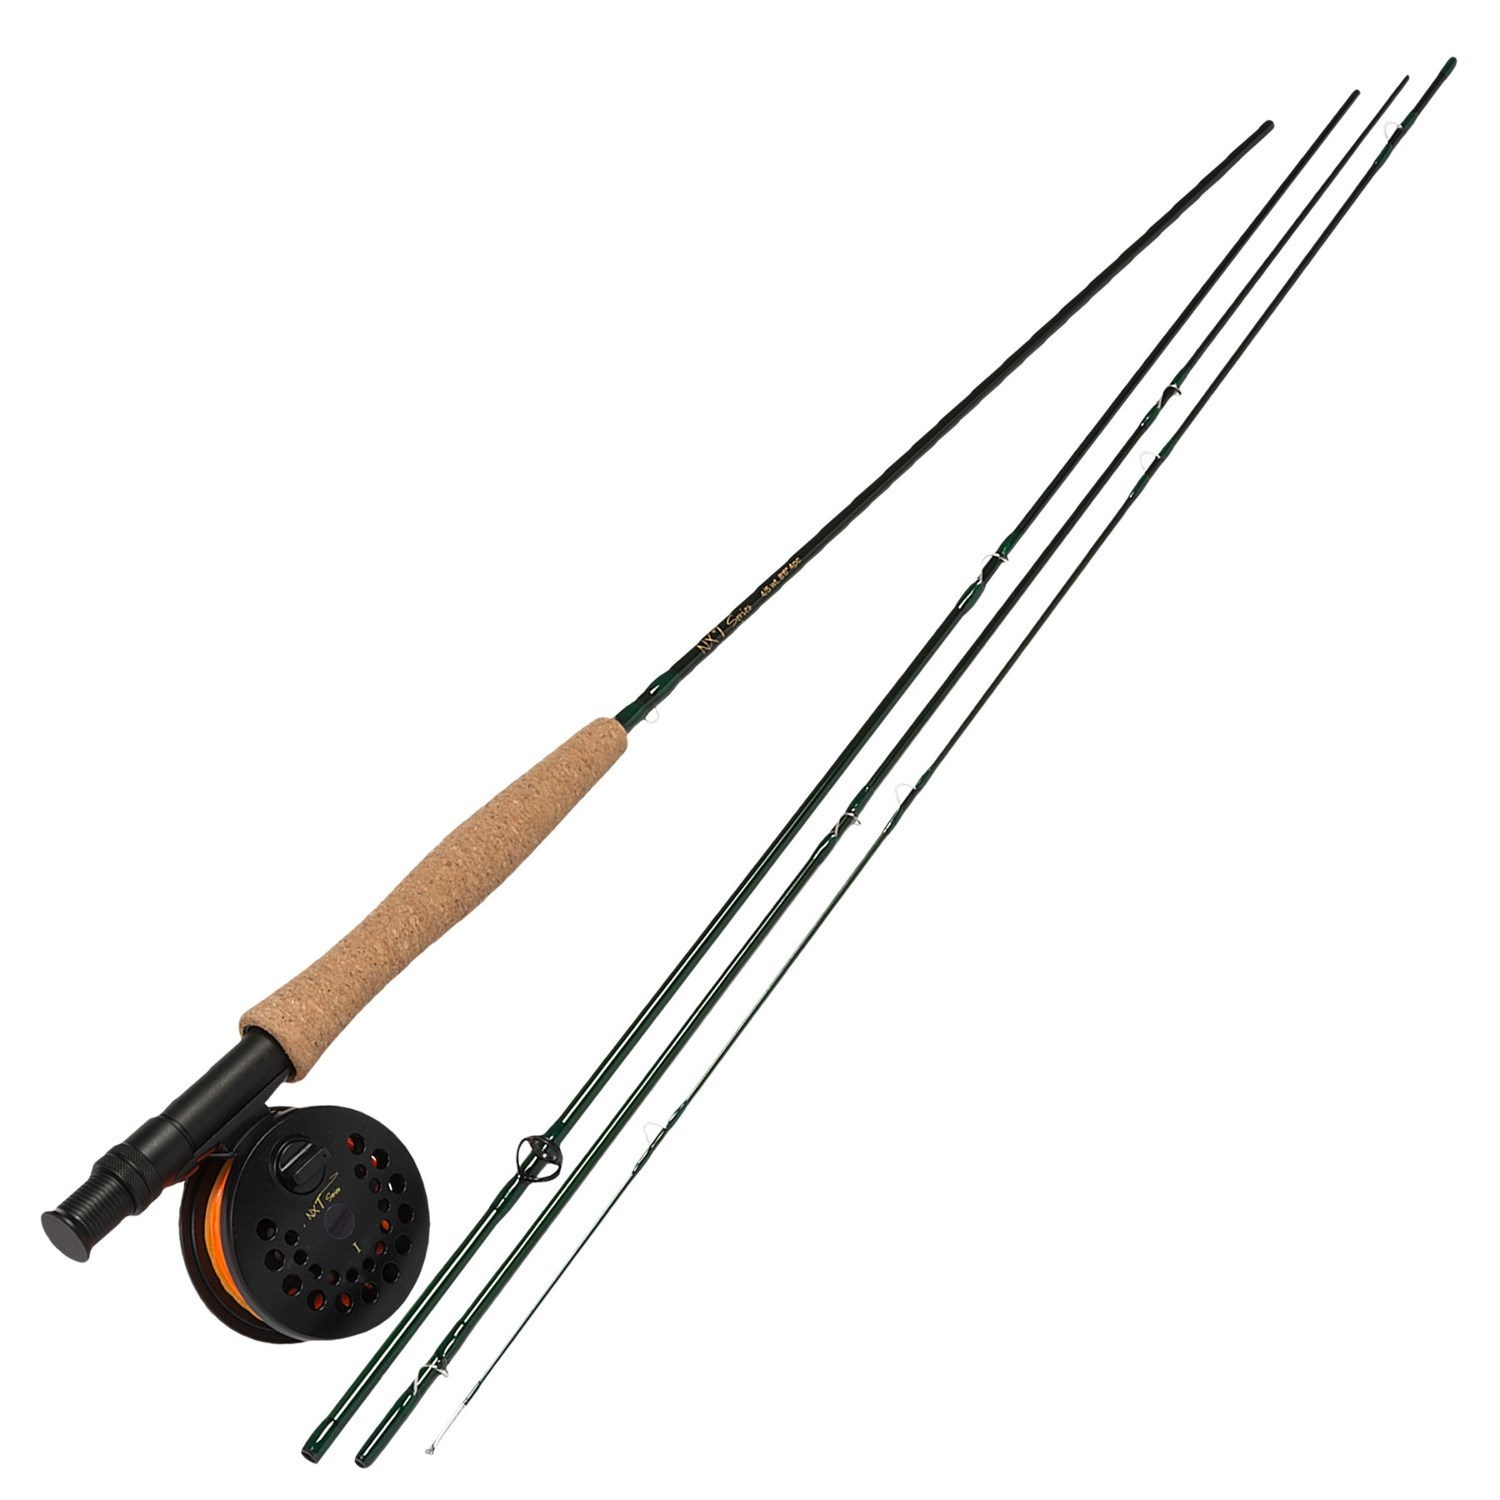 Temple fork outfitters nxt series fly rod and reel combo for Trout fishing rod and reel